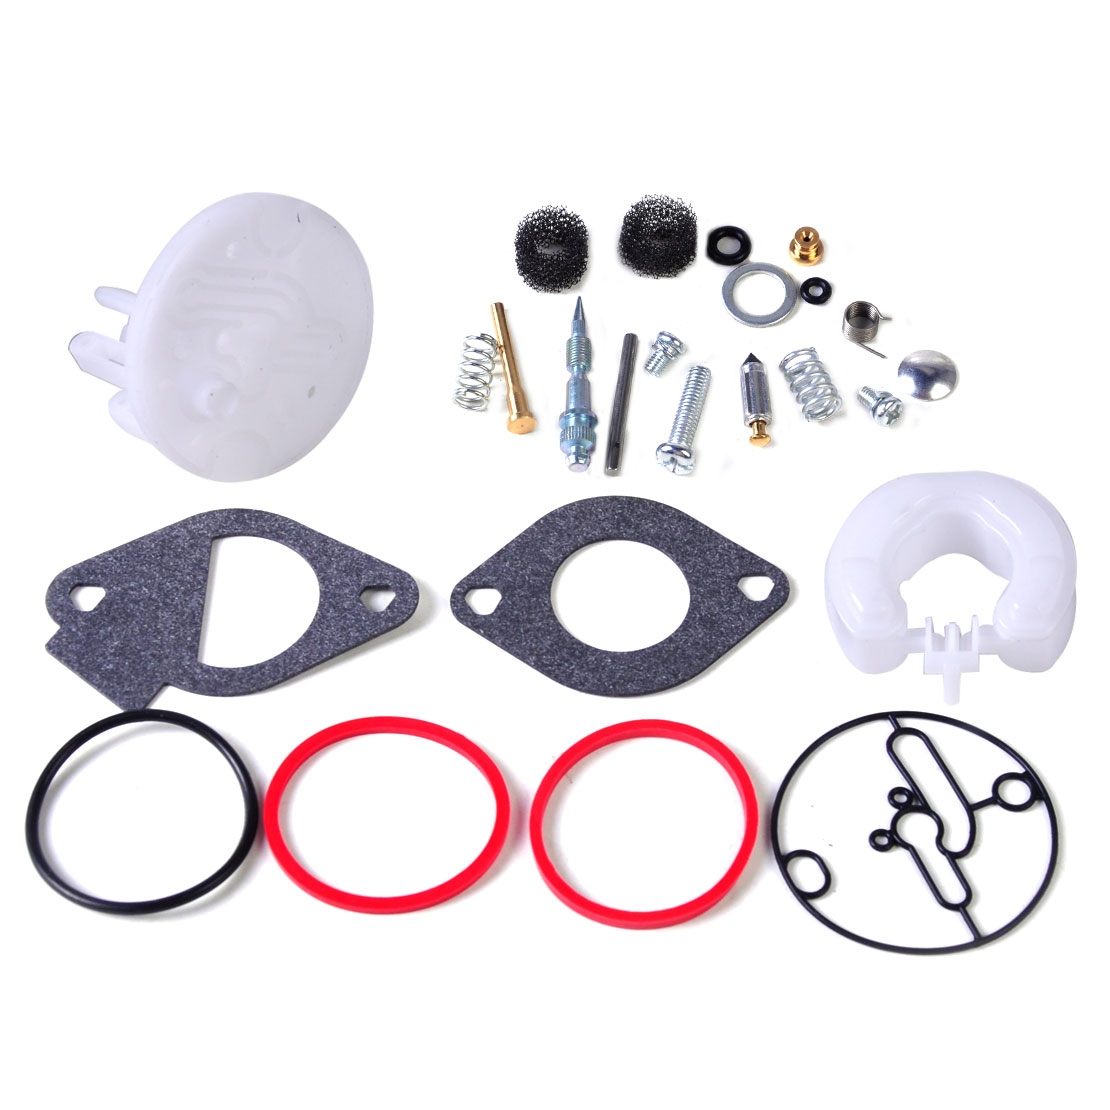 LETAOSK Carburetor Rebuild Repair Kit Fit For Nikki Carb Briggs & Stratton Master Overhaul 796184